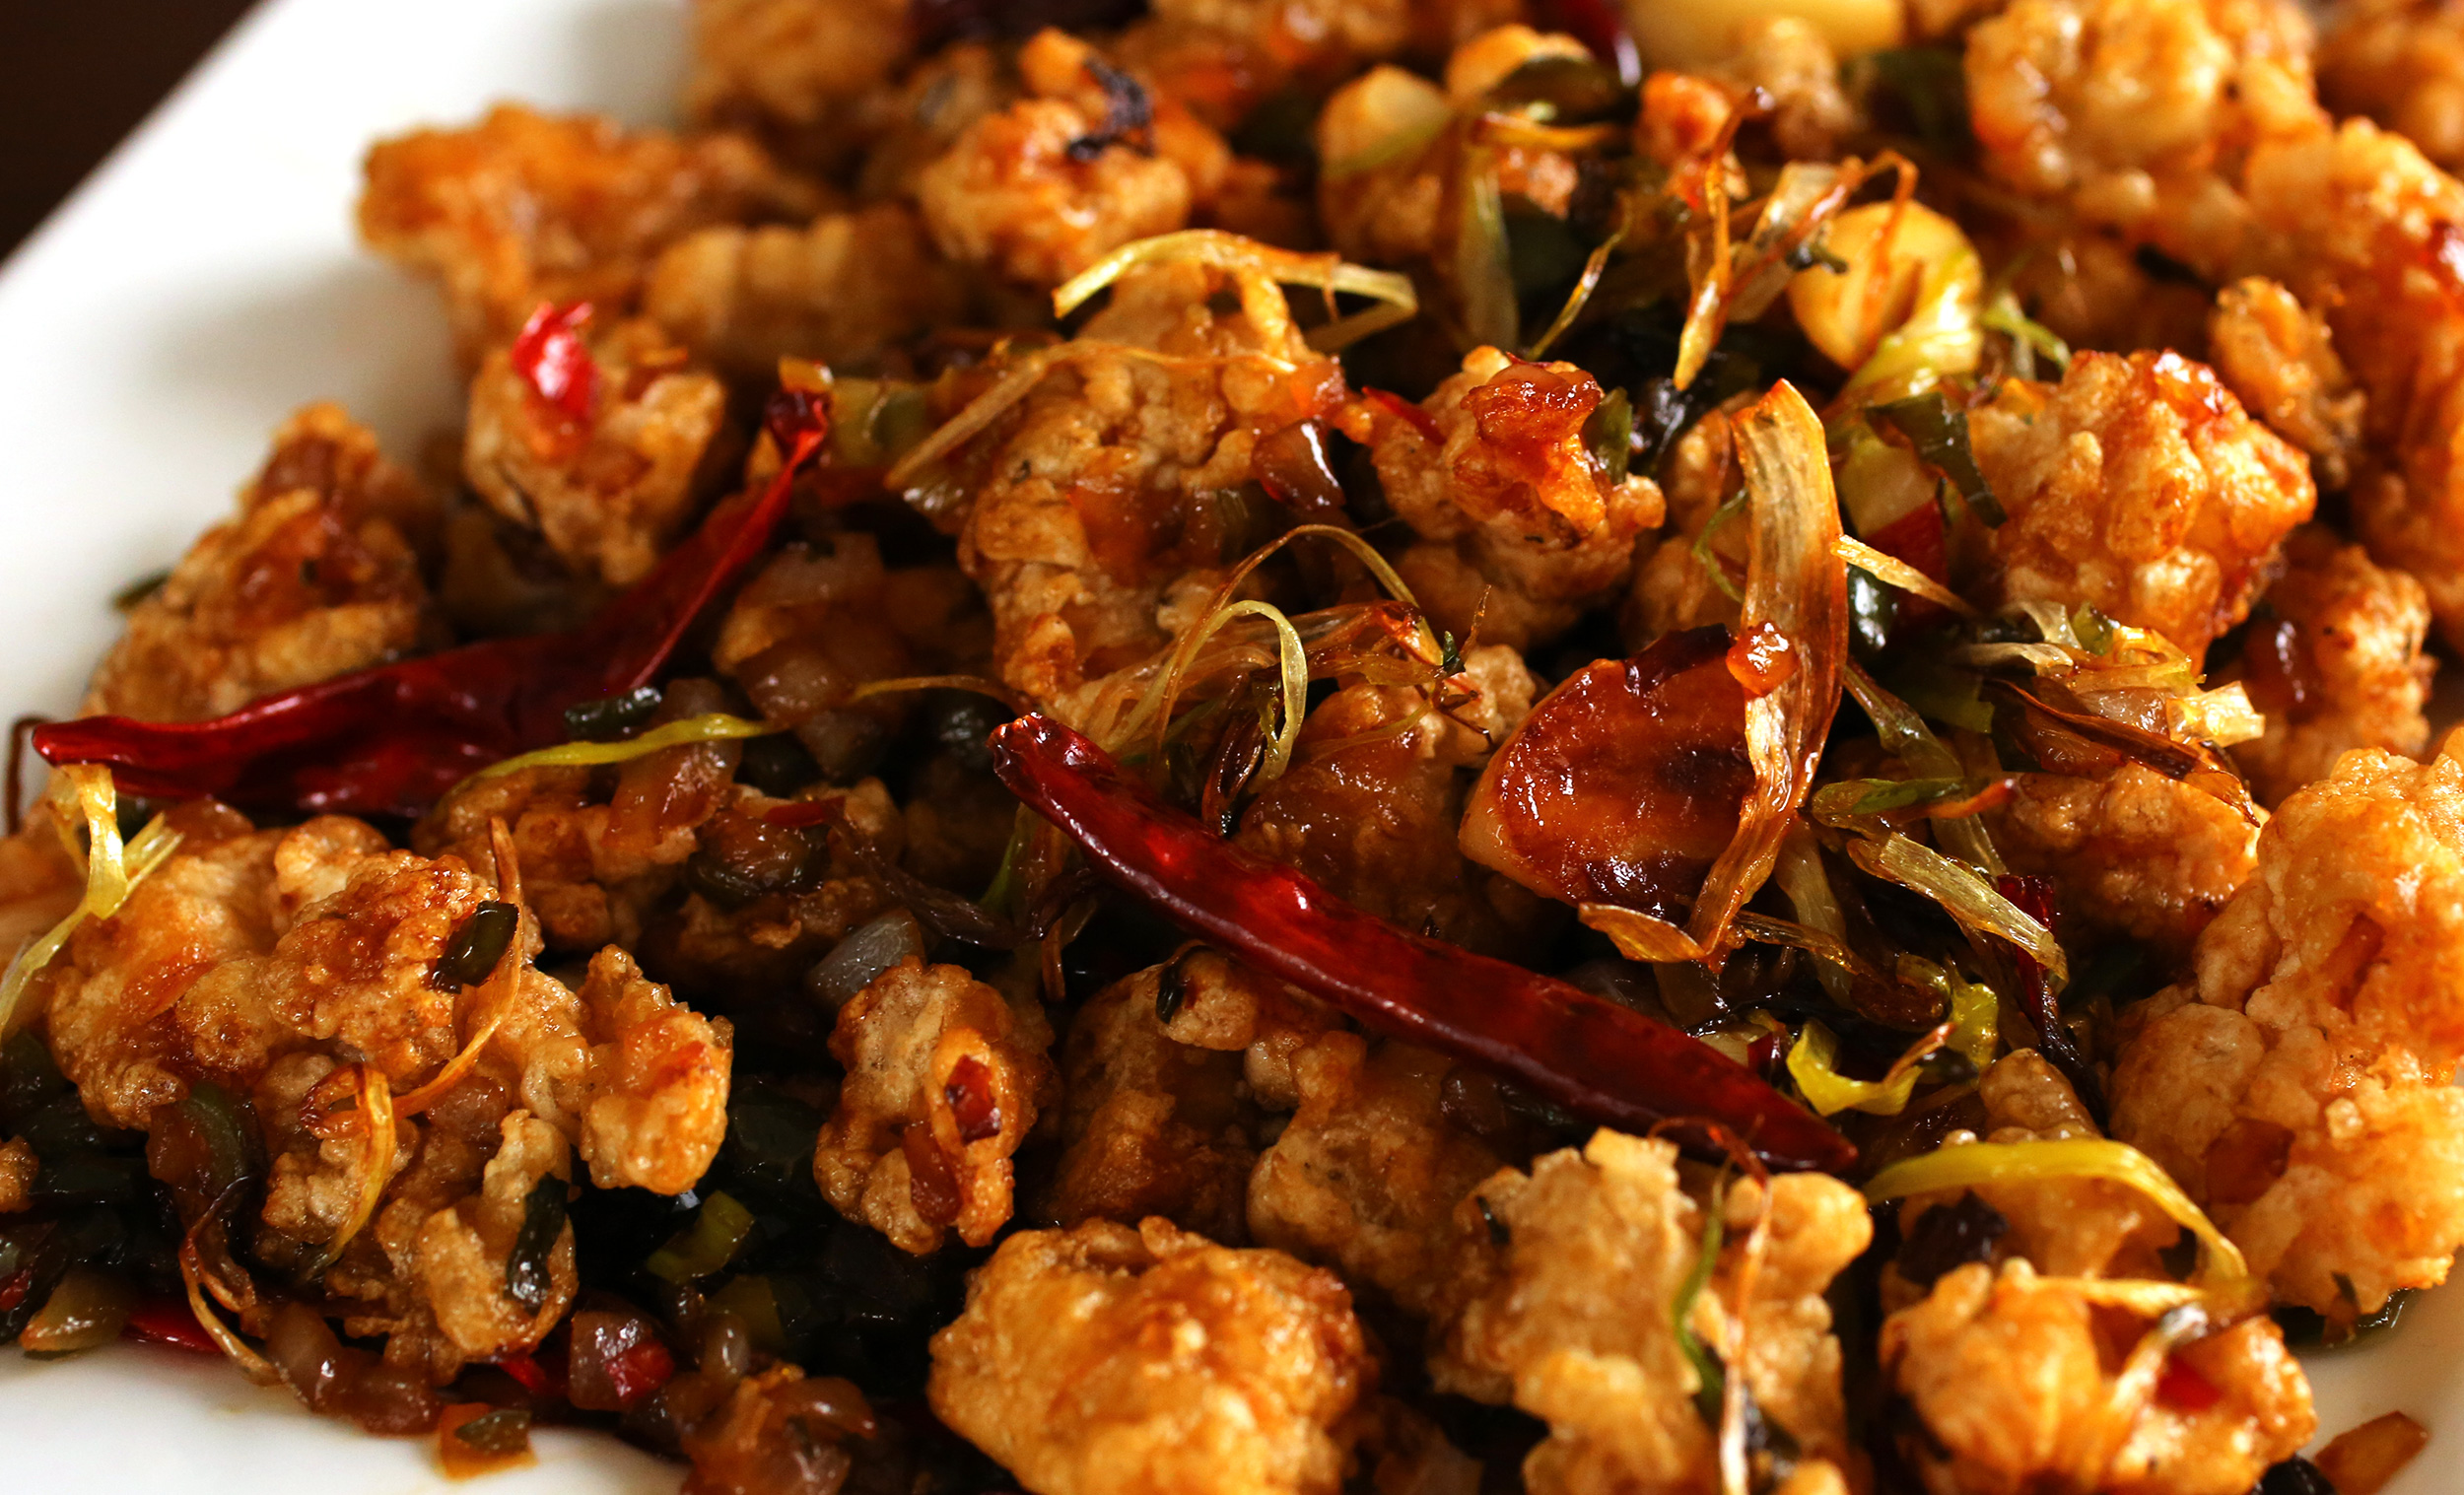 Spicy garlic fried chicken kkanpunggi recipe maangchi spicy garlic fried chicken kkanpunggi forumfinder Image collections